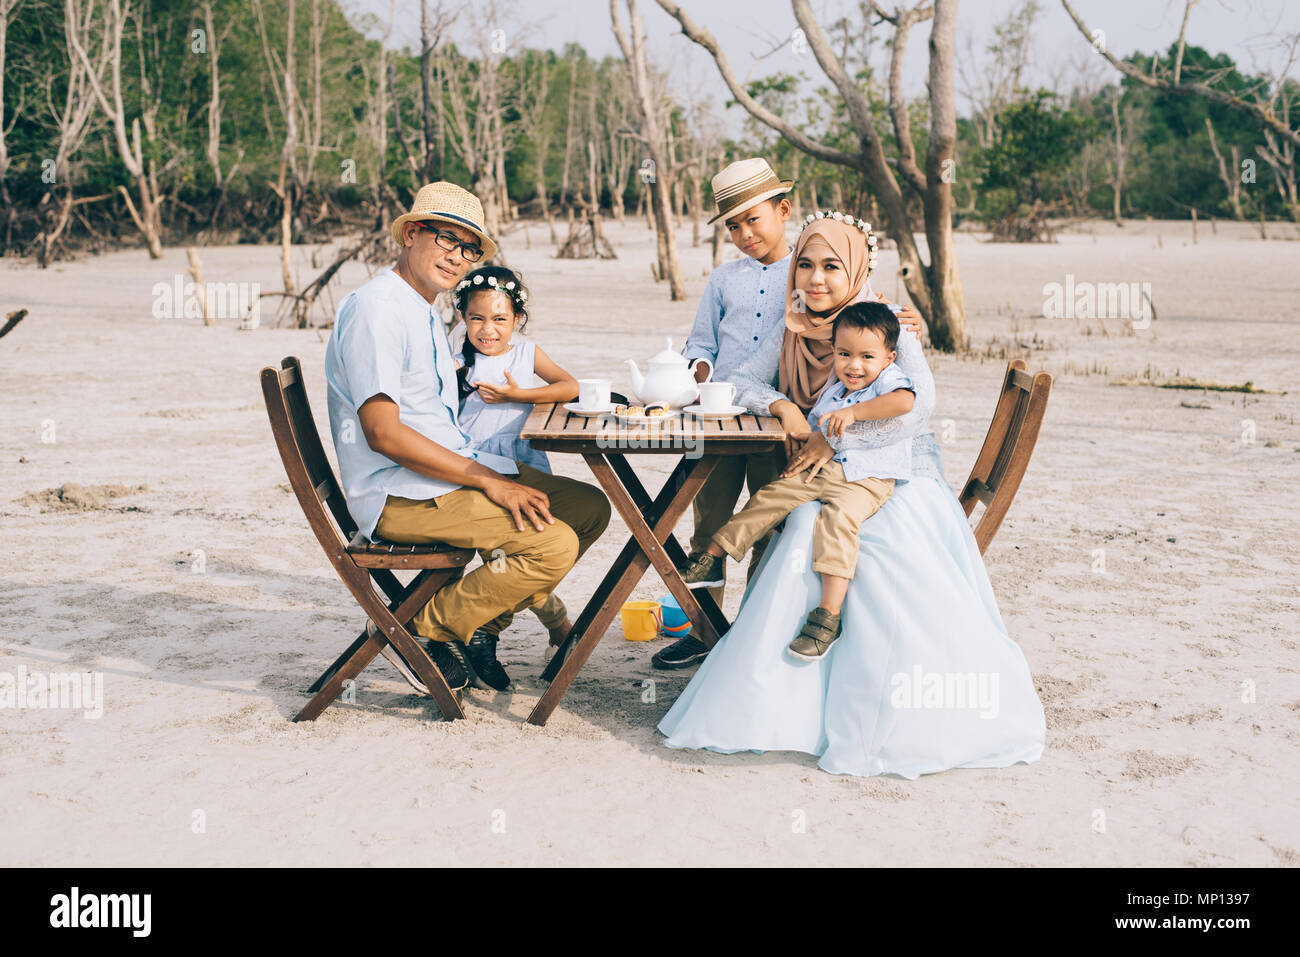 happy asian family having a good moment of happiness picnic outdoor. family,love and relationship concept - Stock Image